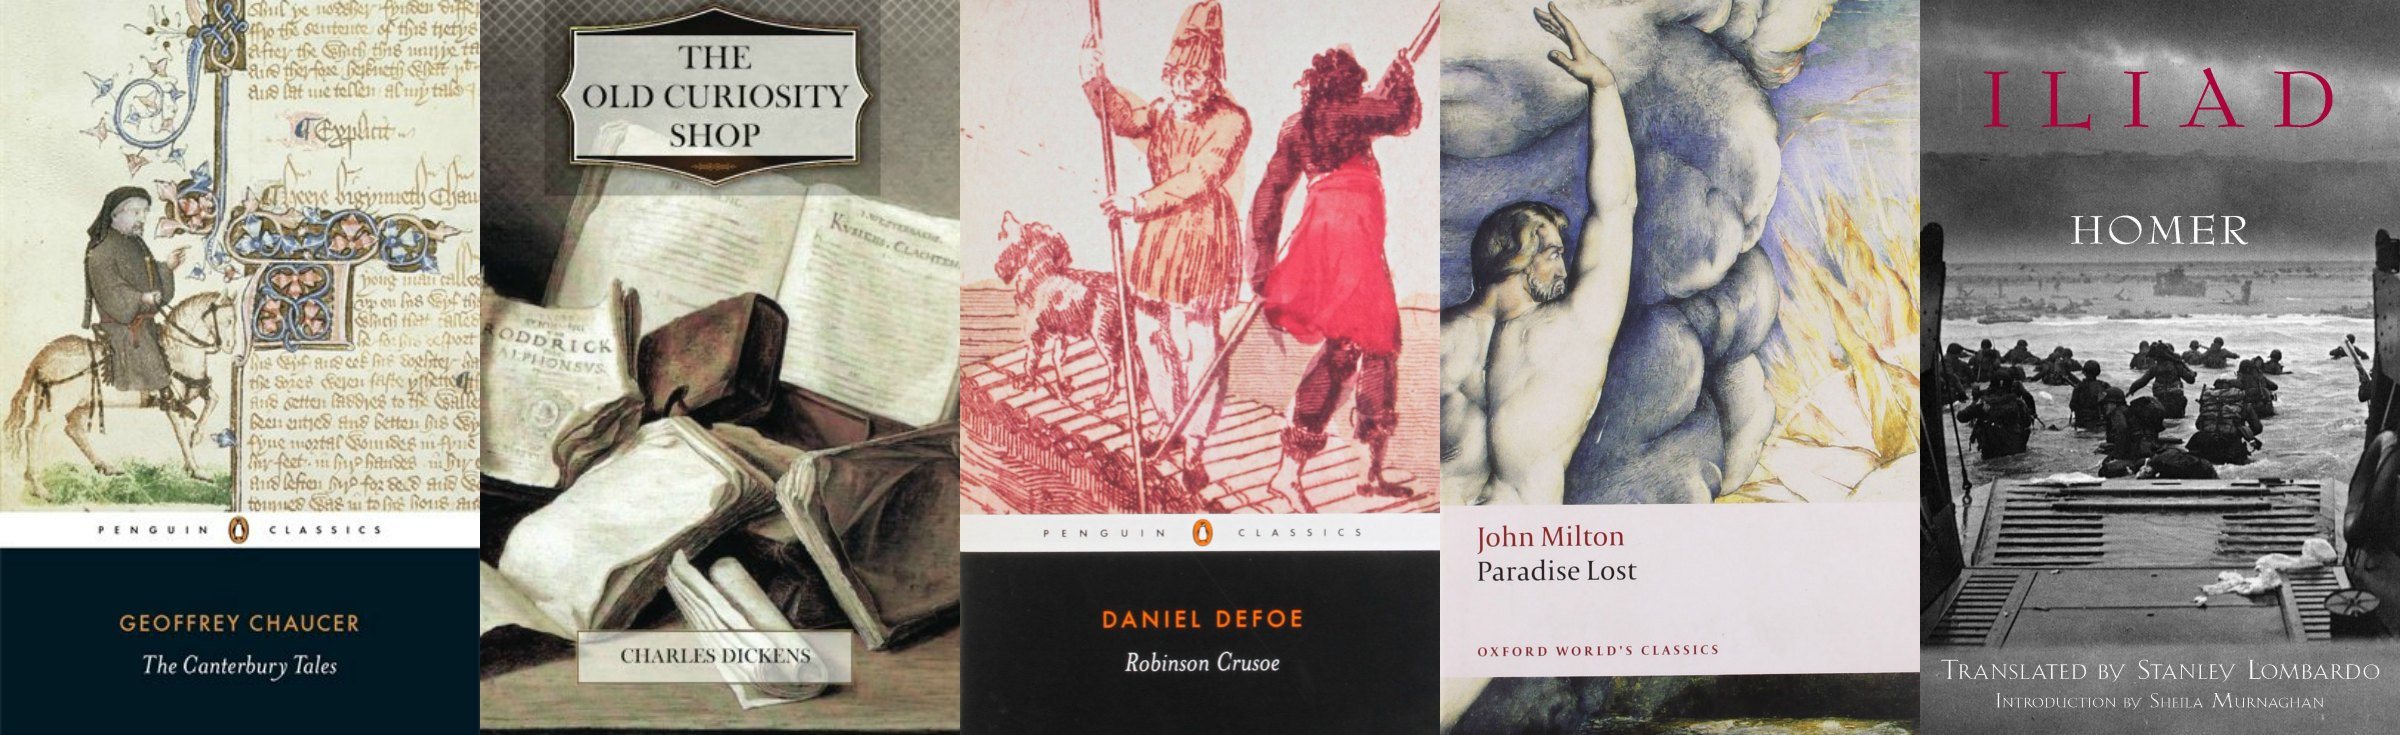 a comparison of paradise lost by john milton and the canterbury tales by geoffrey chaucer (part-1) paradise lost summary in hindi | john milton | literary help  learn english through story - the canterbury tales by geoffrey chaucer.